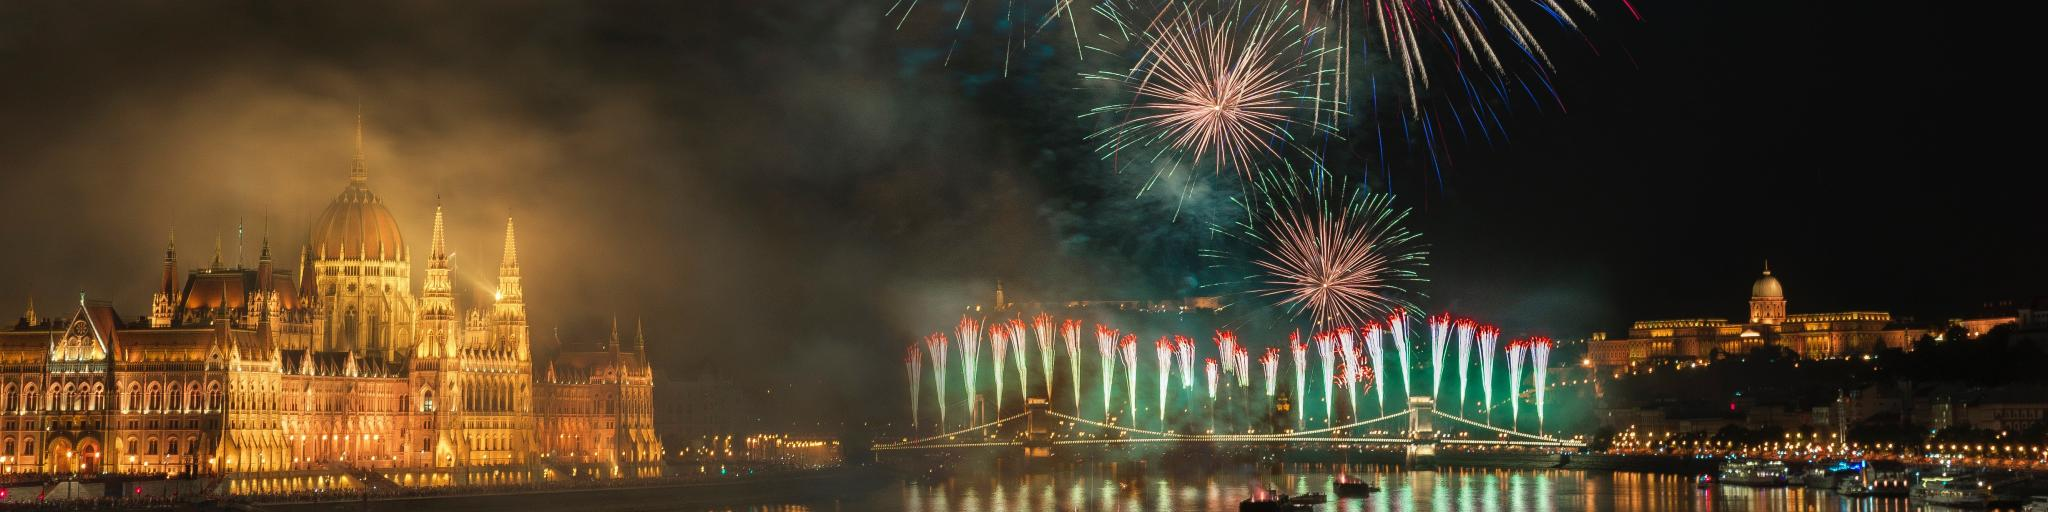 Fireworks exploding over the Danube in Budapest with the lit up Hungarian Parliament building to the side